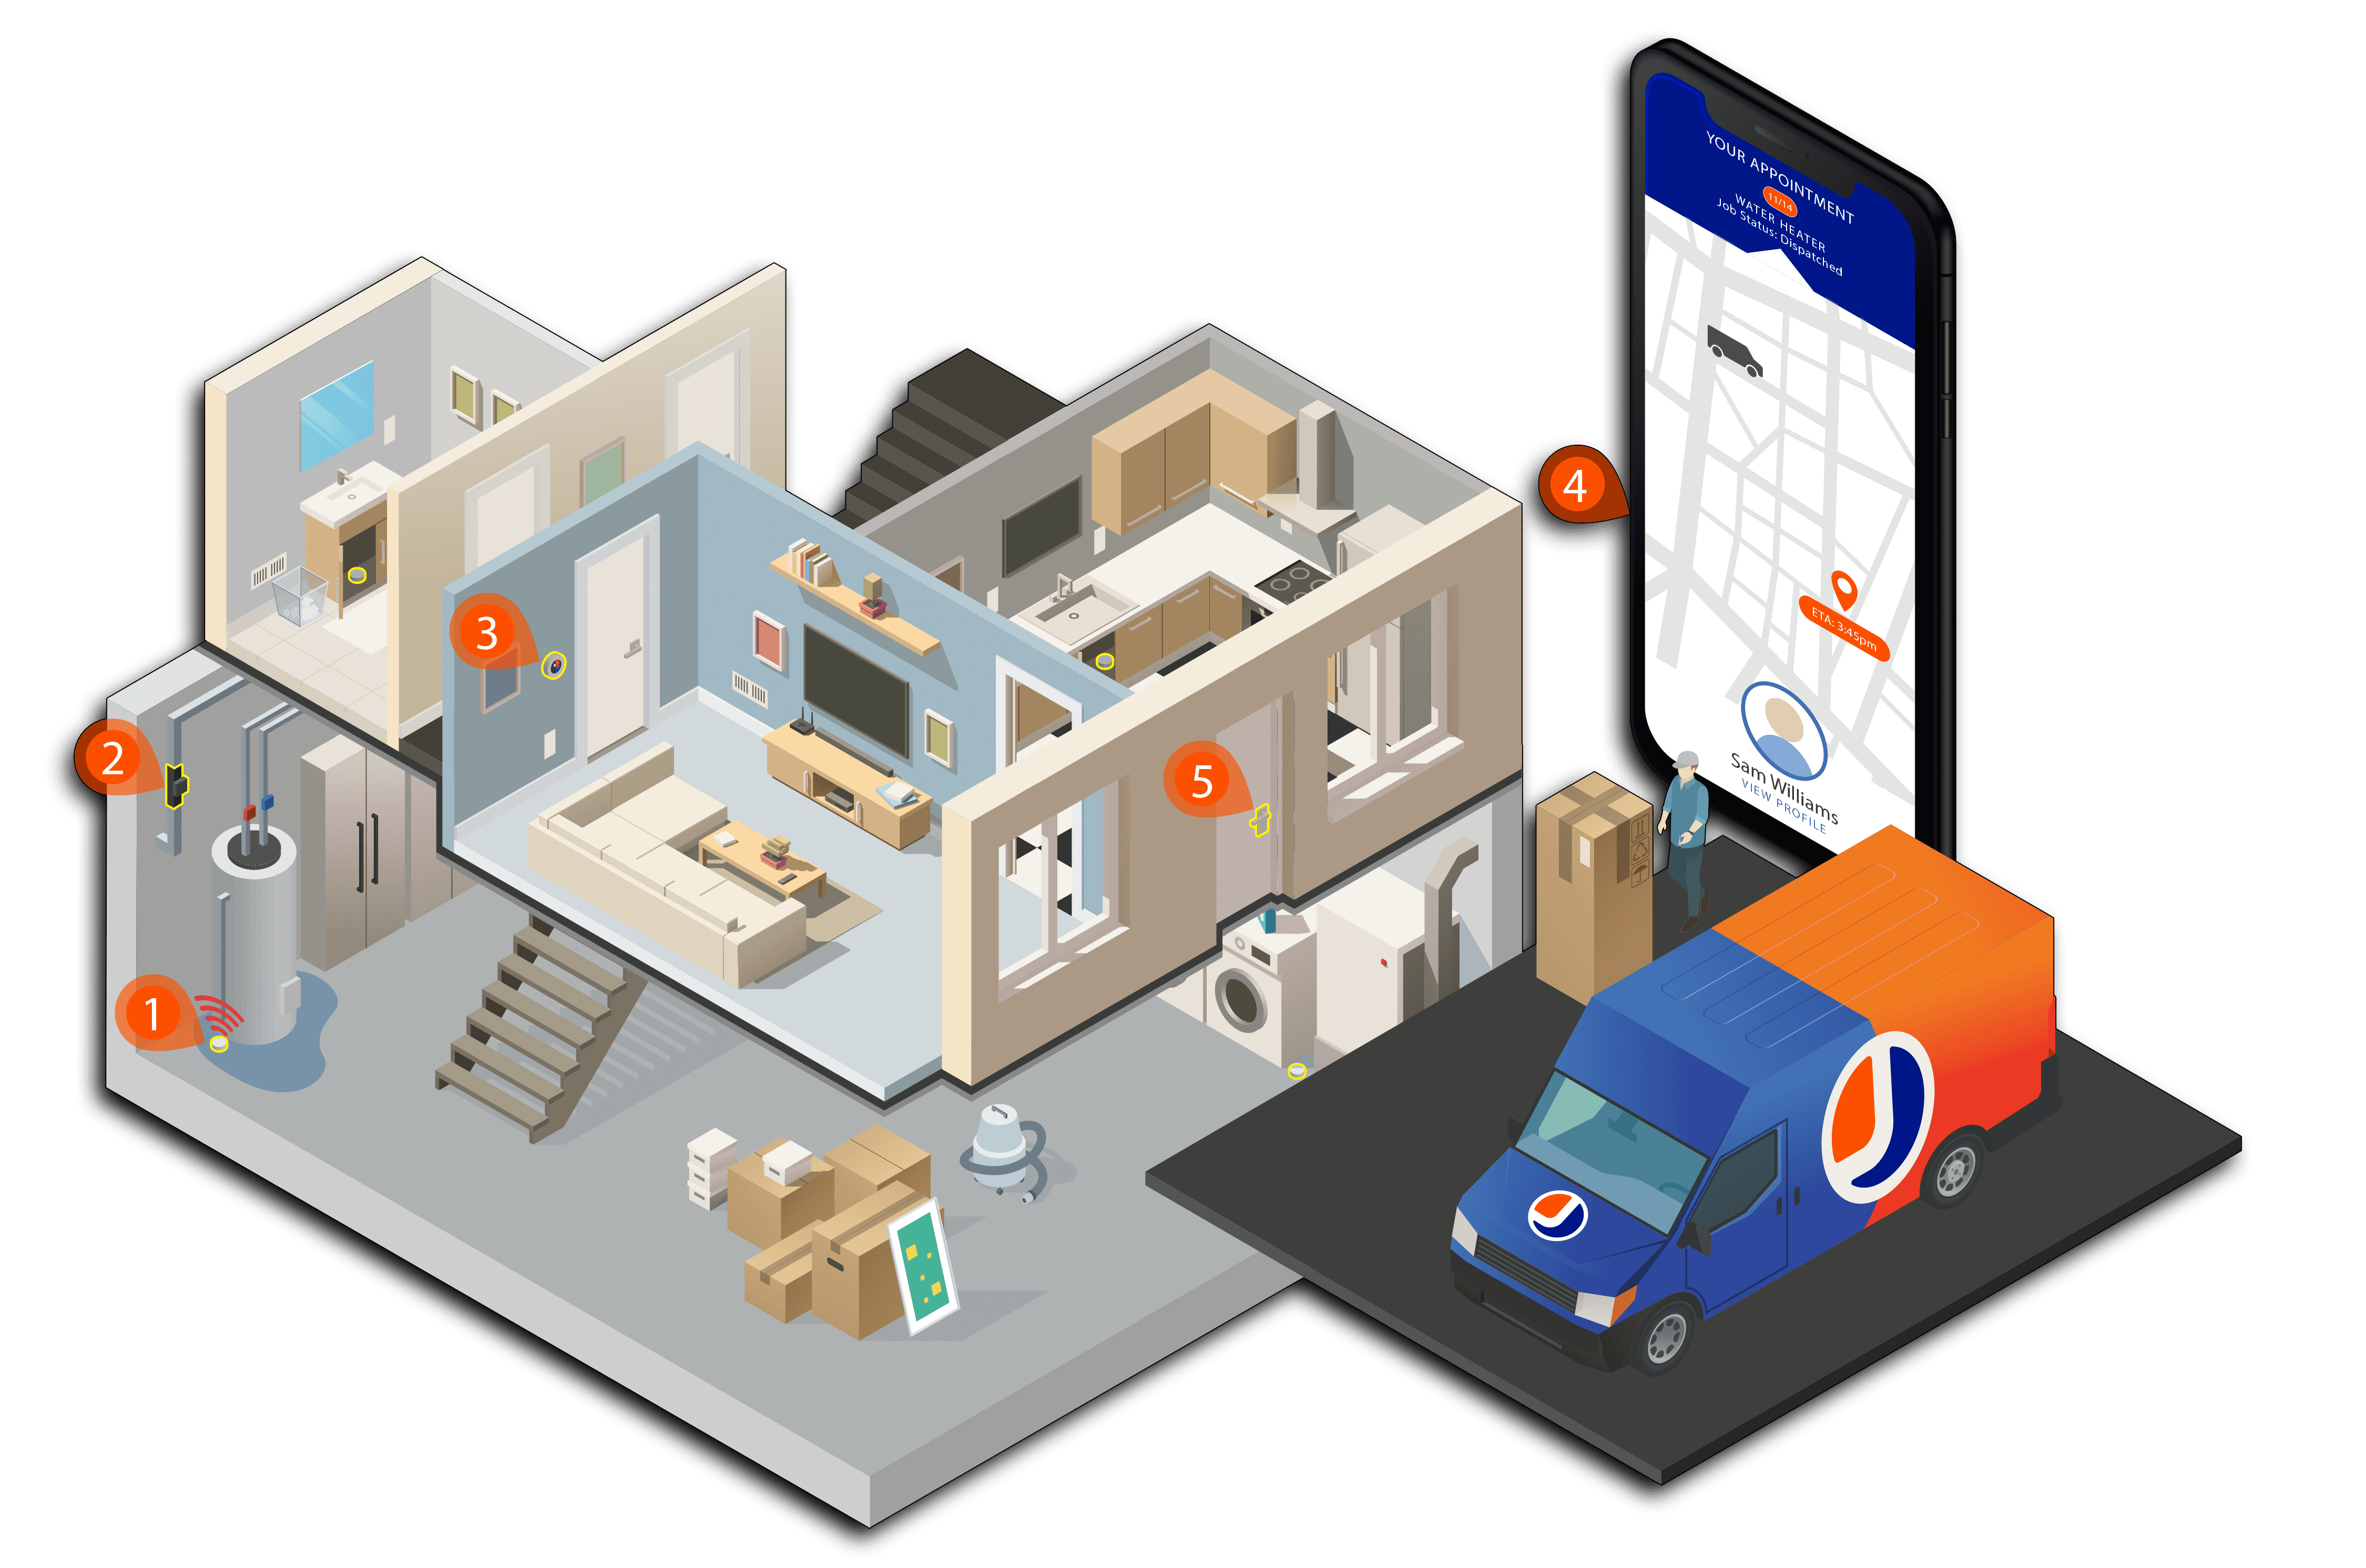 Diagram of how home automation can benefit a home